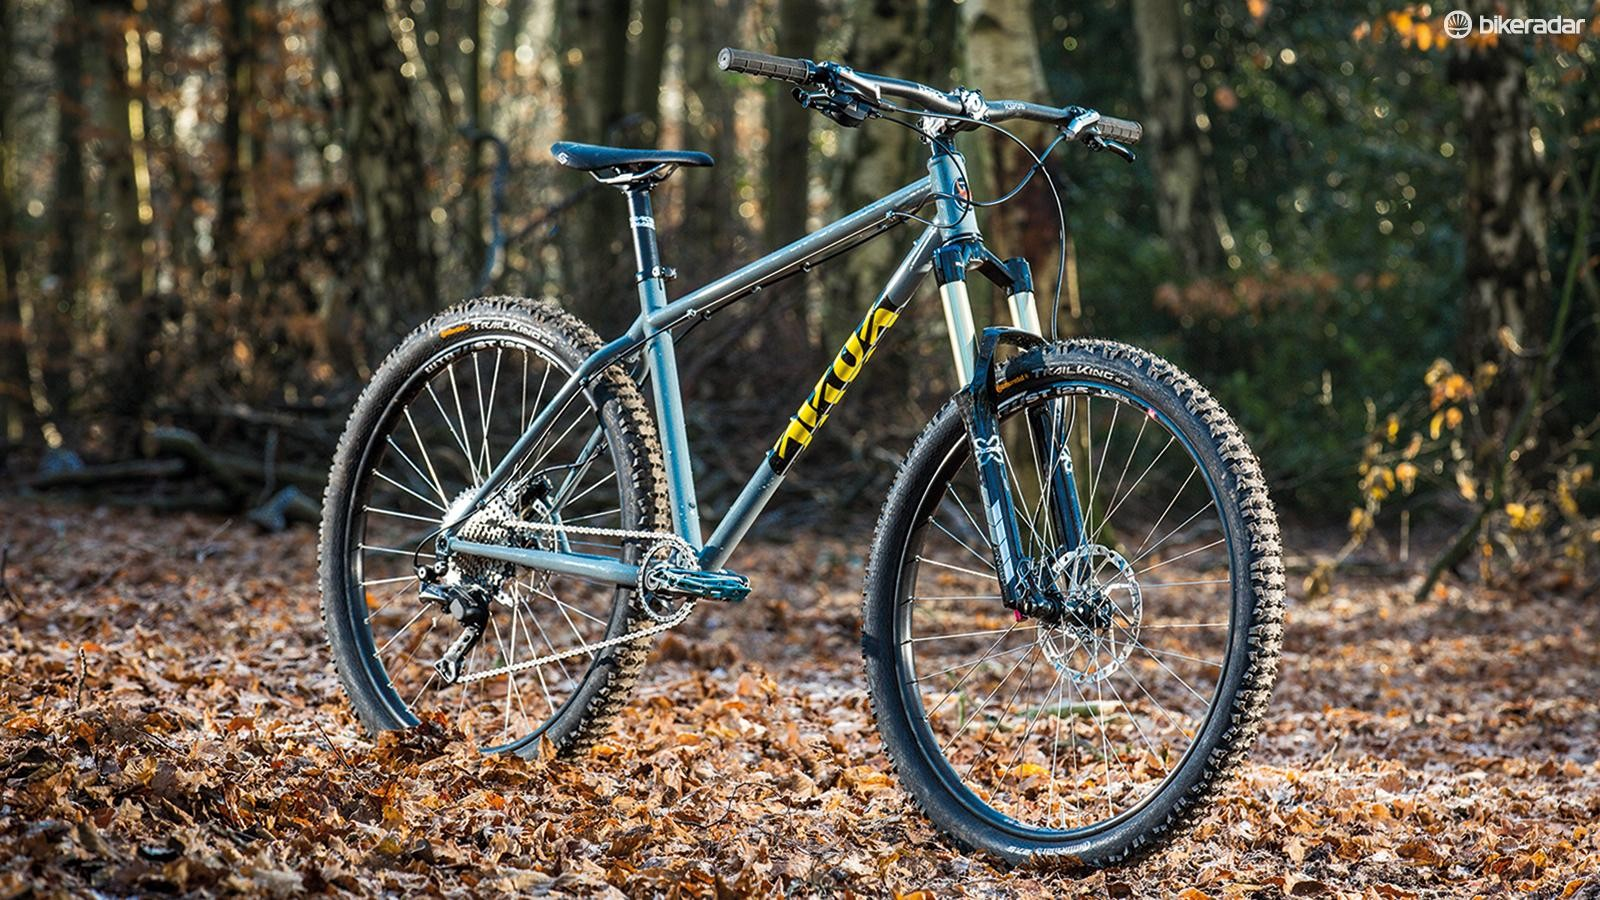 The 140mm X-Fusion fork suits the bike well in feel, but one with 120mm of travel or even less would give better-balanced geometry